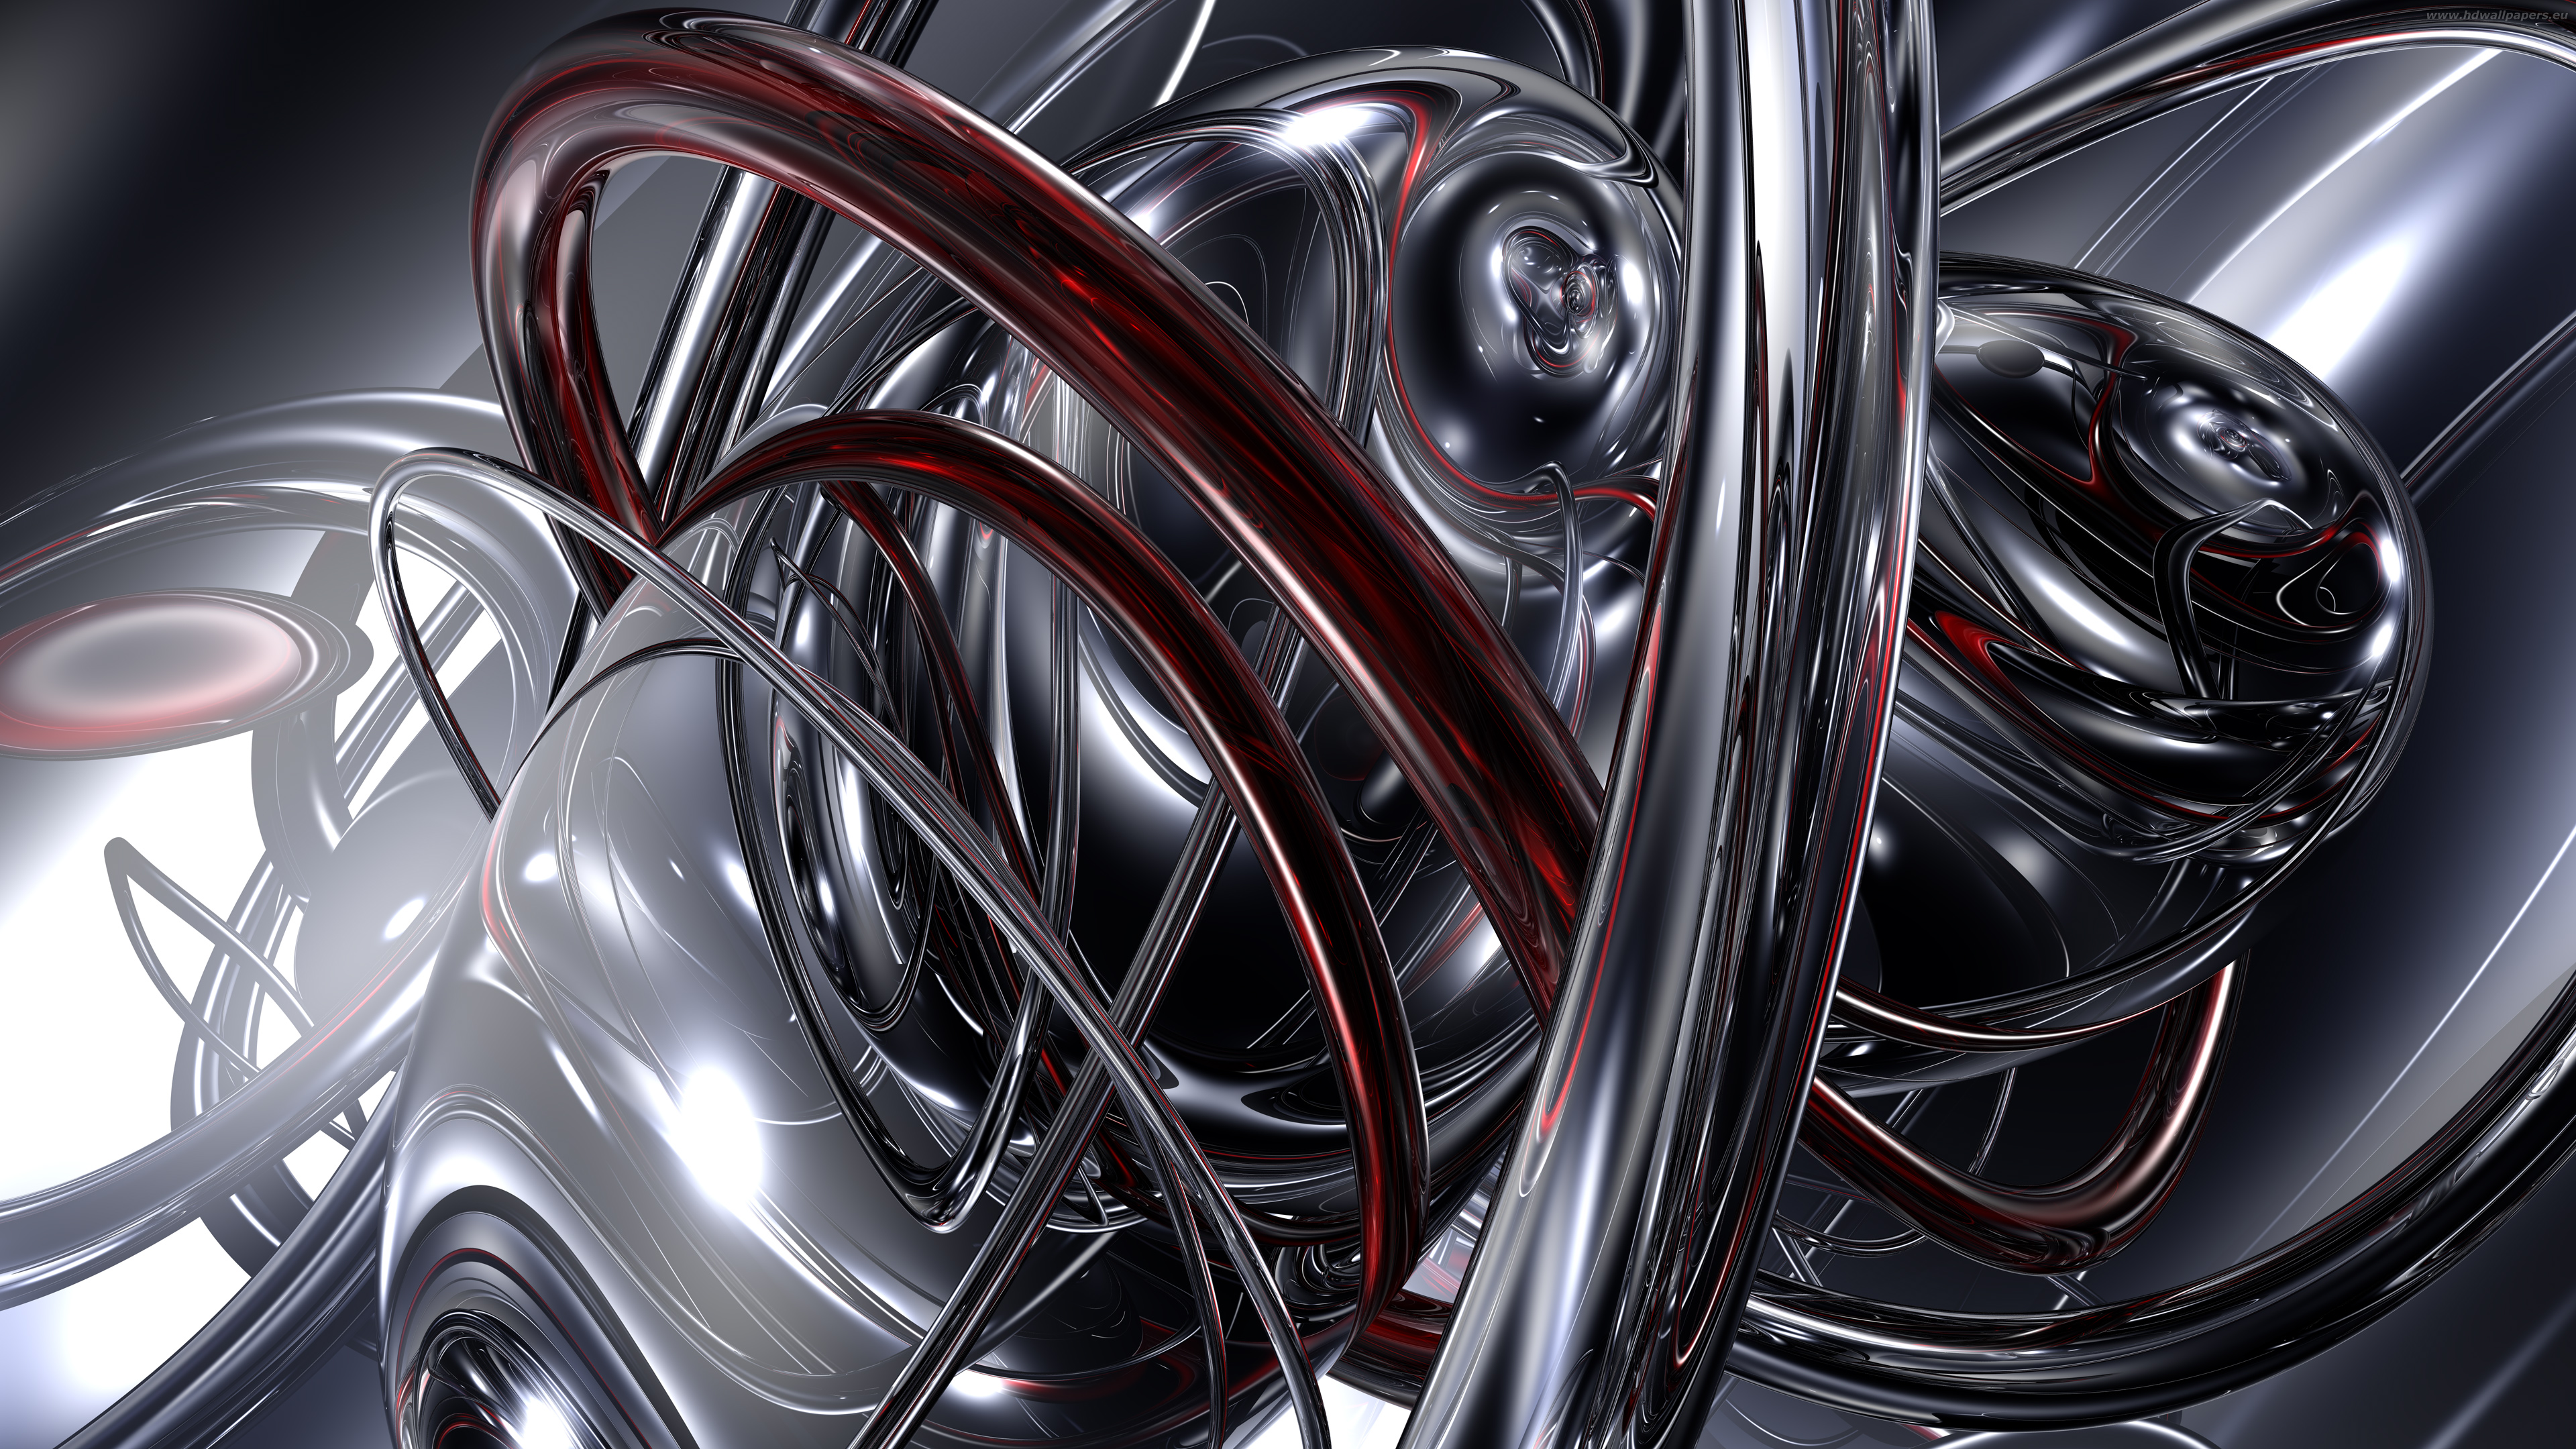 com Black White Silver Abstract Swirls 4K Wallpaper 3840x2160